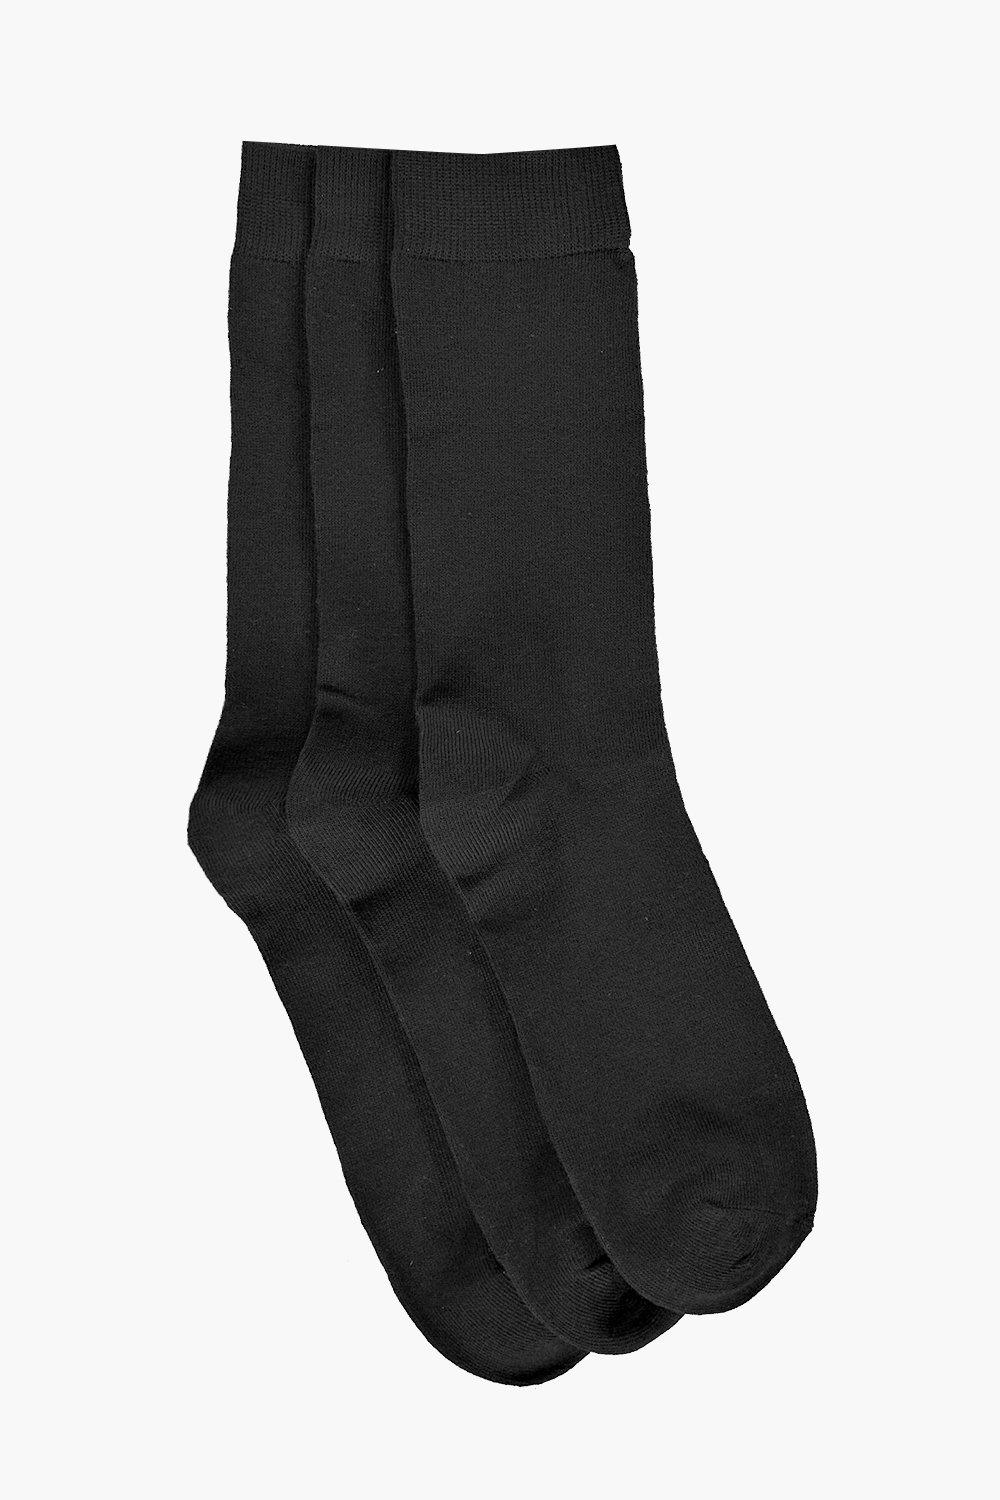 Mens Black Socks (3 Pack)